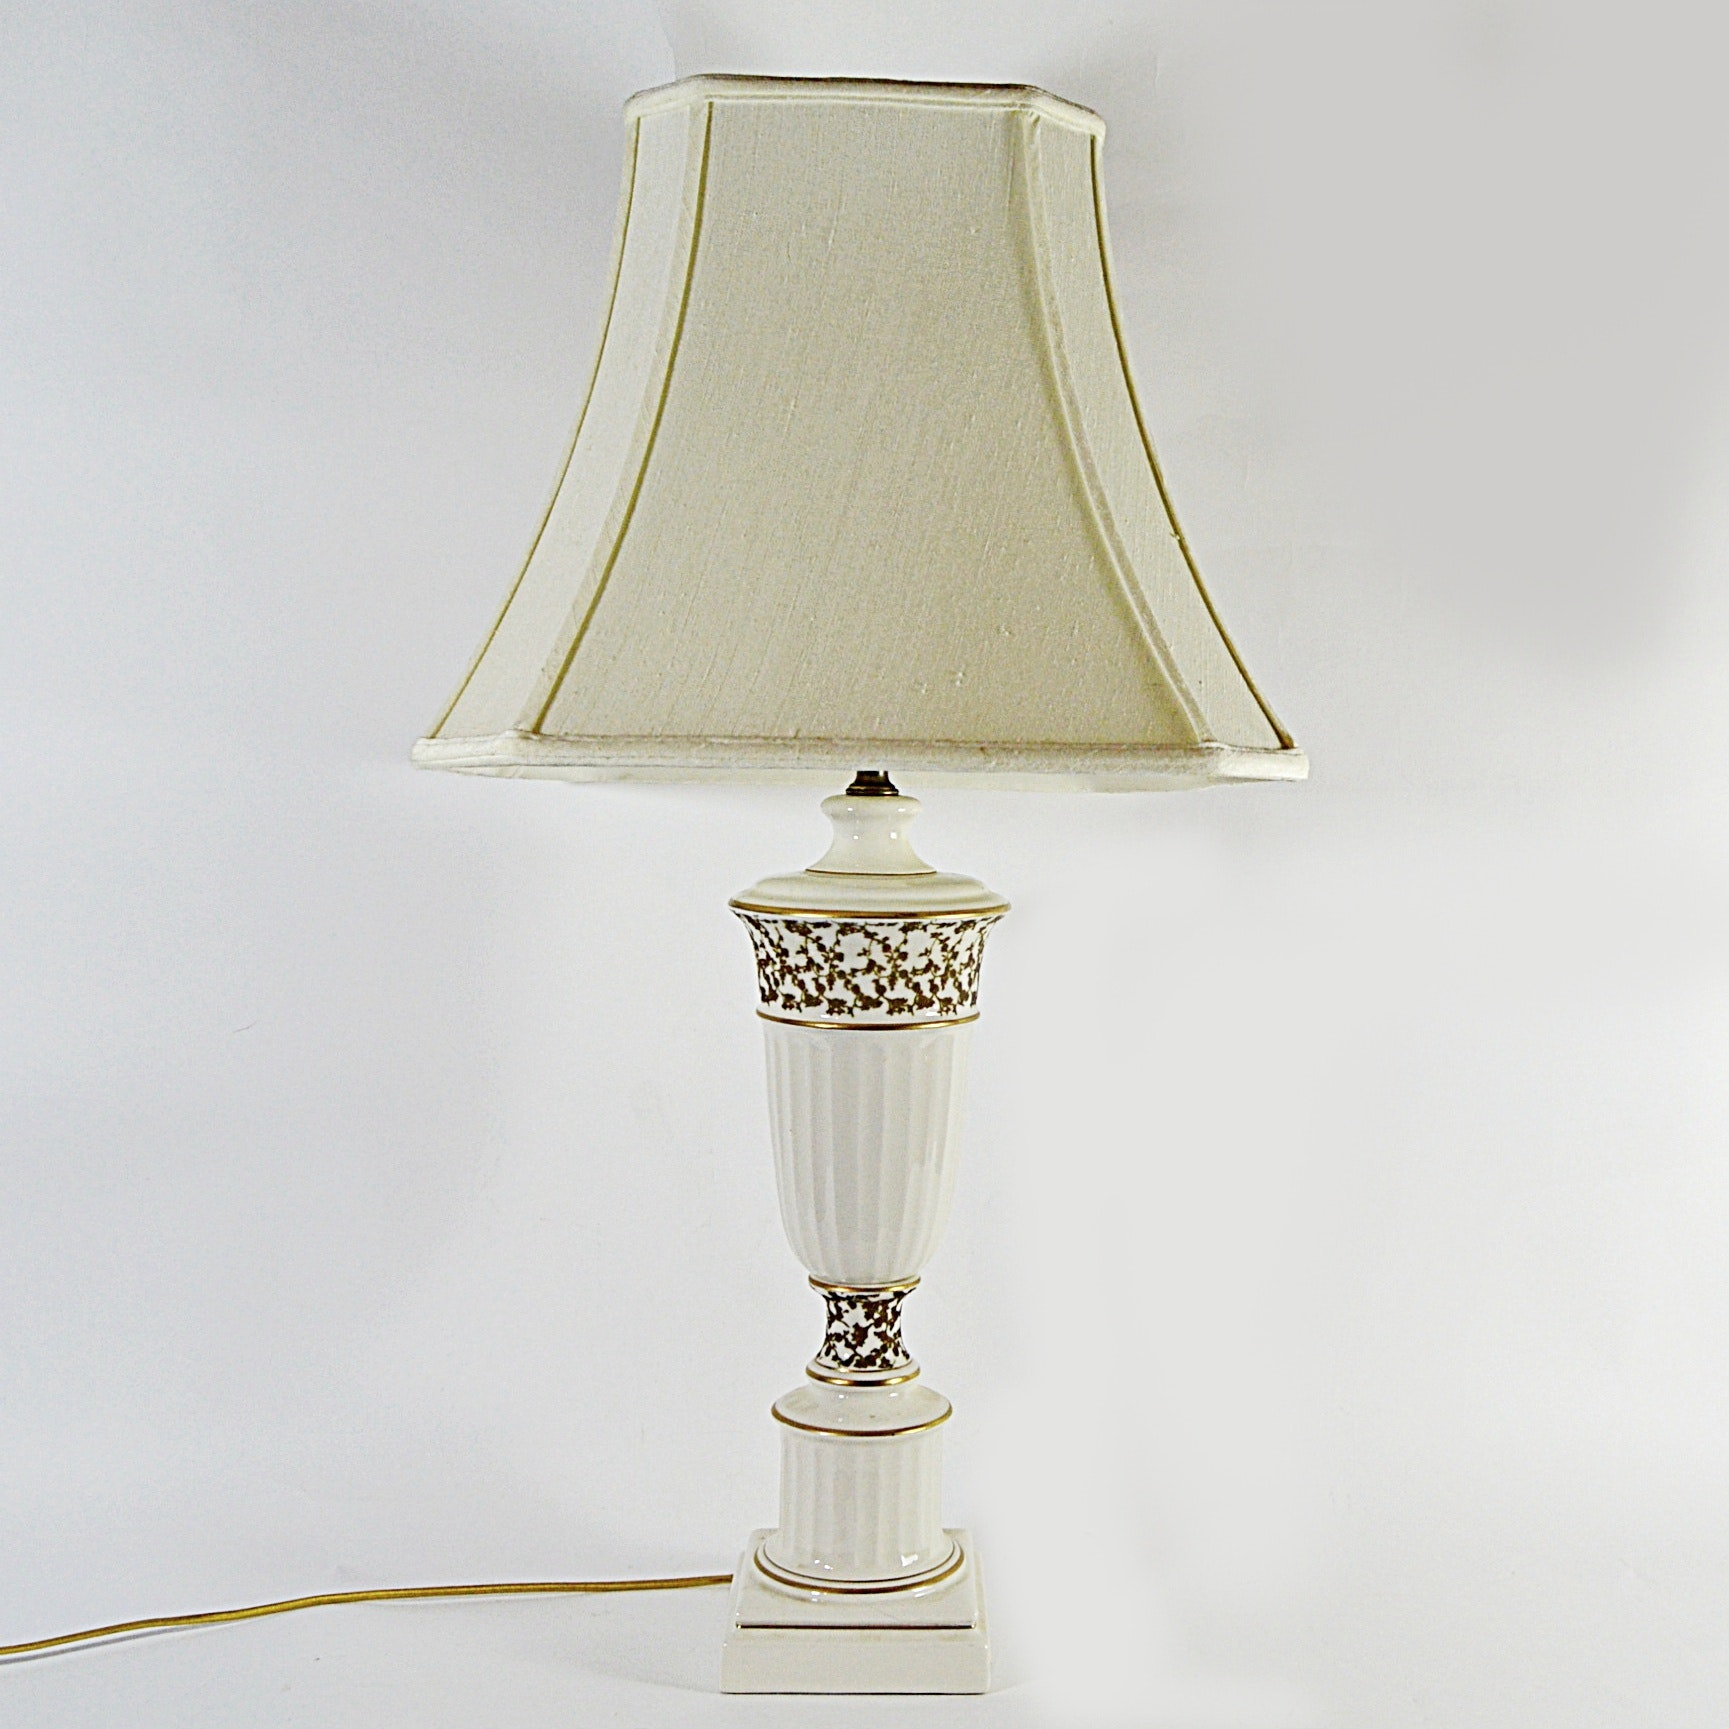 Classical White Porcelain Table Lamp